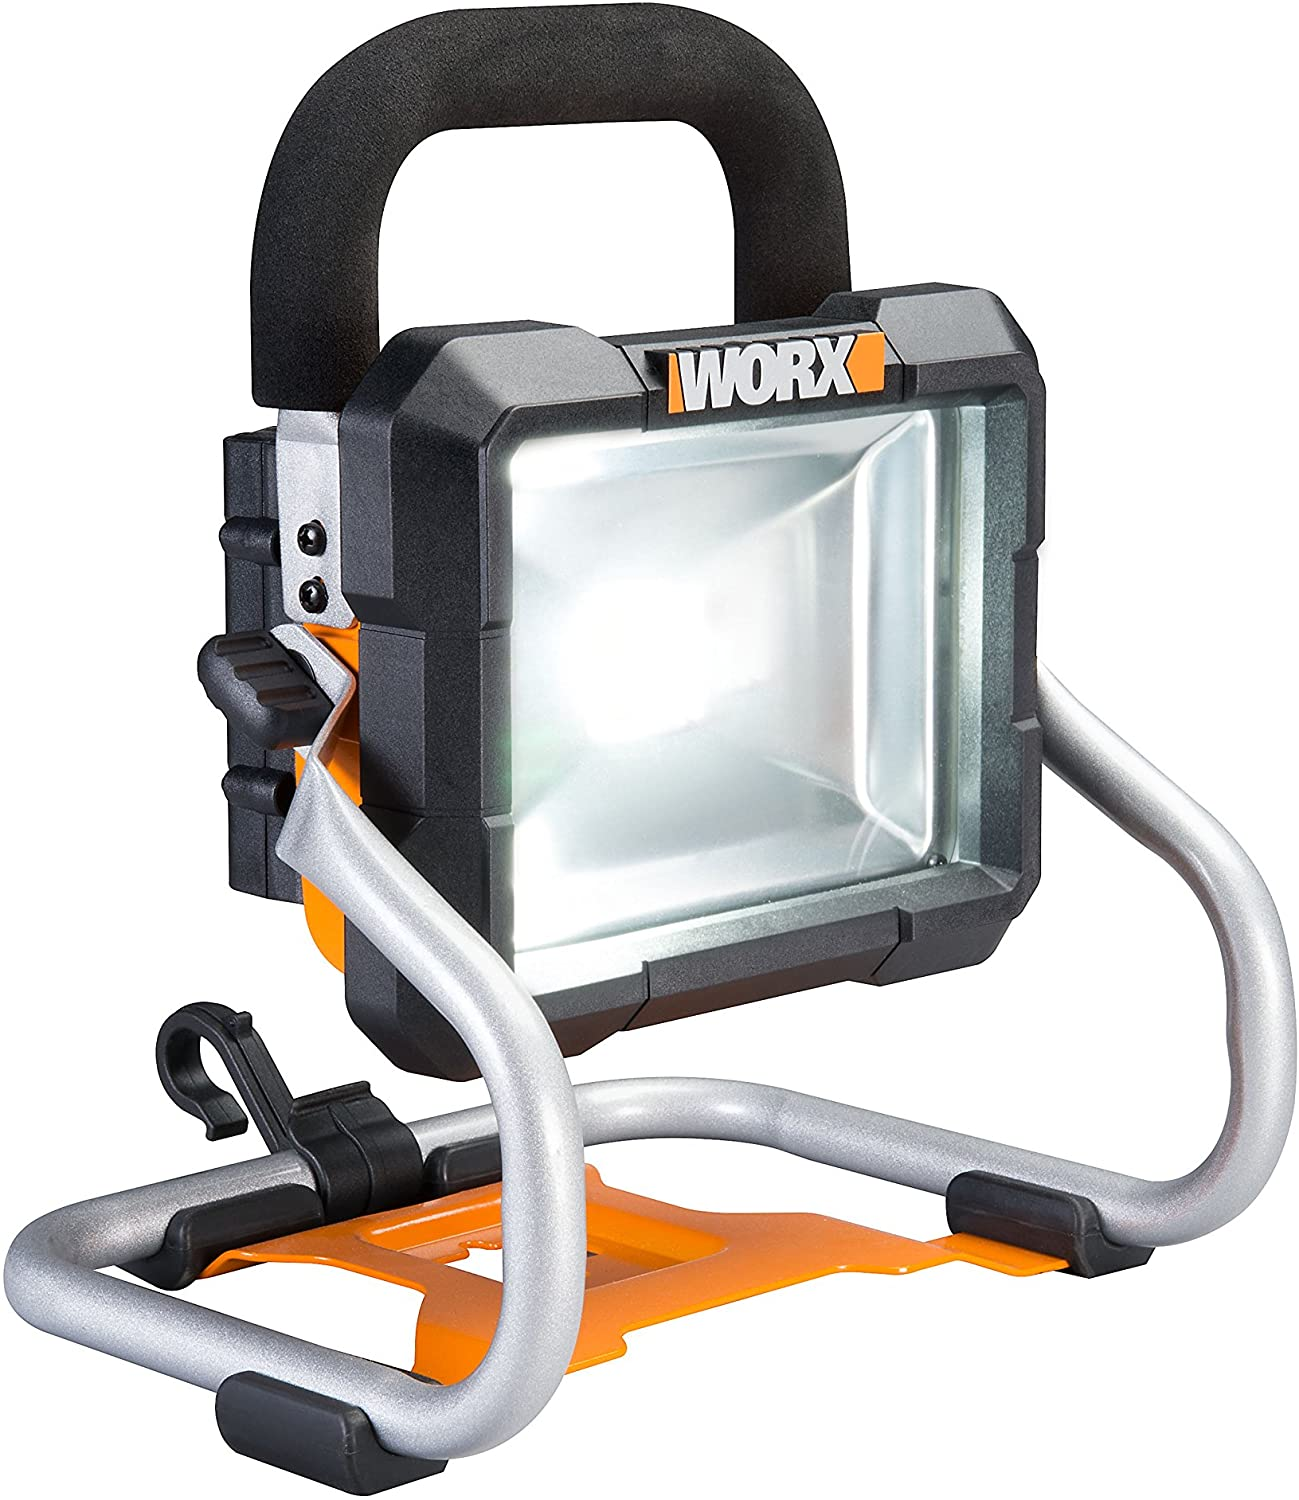 Max 79% OFF Worx WX026L.9 20V Power Share Light LED Tool Work Only Super intense SALE